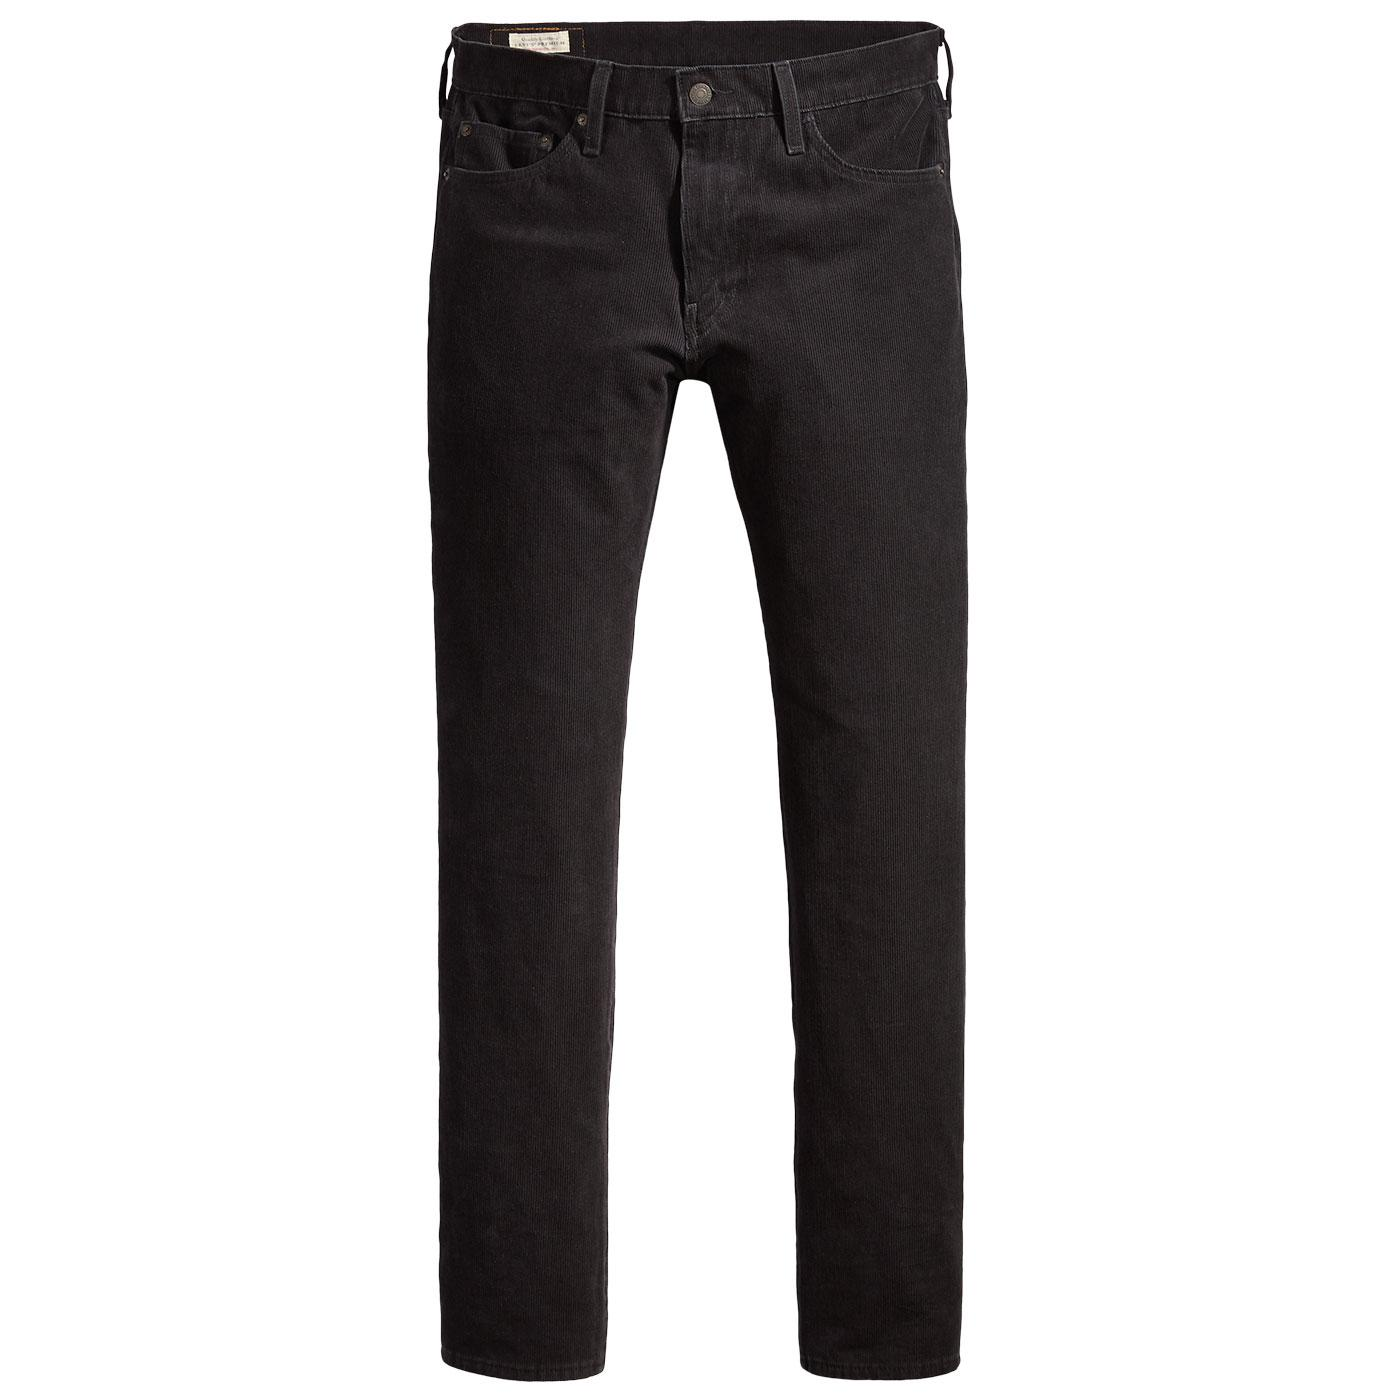 LEVI'S 511 Retro Slim Stretch Cord Jeans (Caviar)